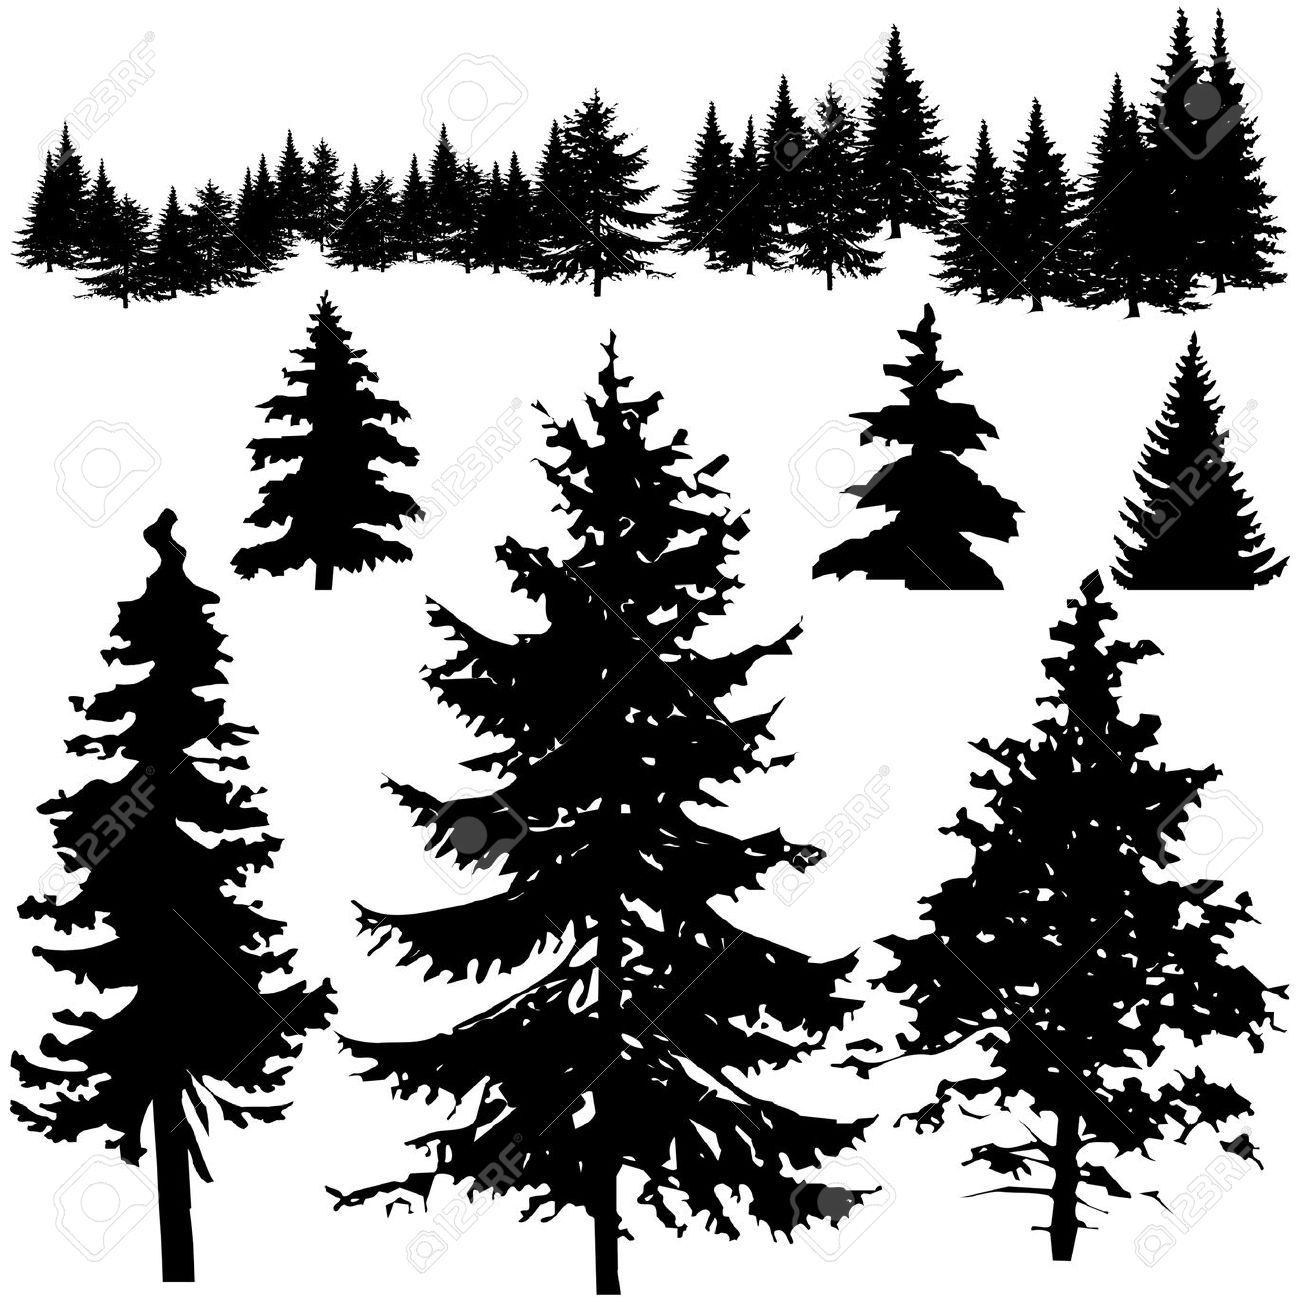 pine tree silhouette - Google Search | Bears Moose and ...